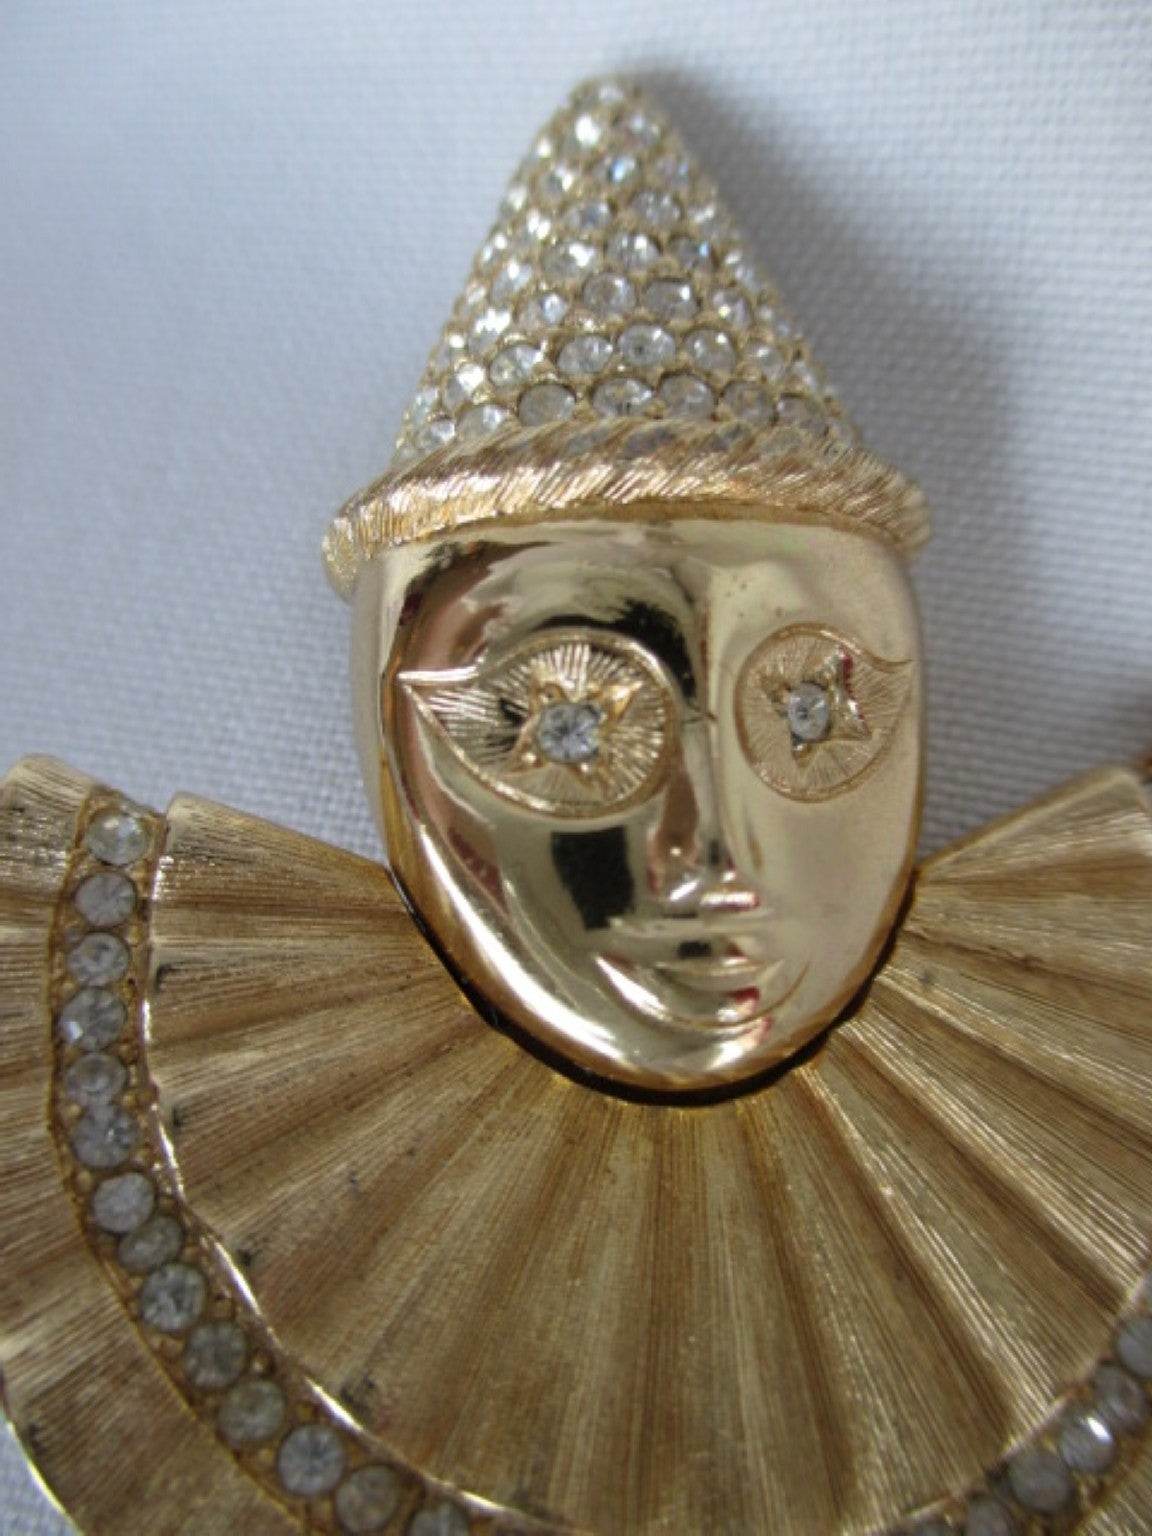 Gorgeous clown brooch from the 1980s by Maison CHRISTIAN DIOR. 4